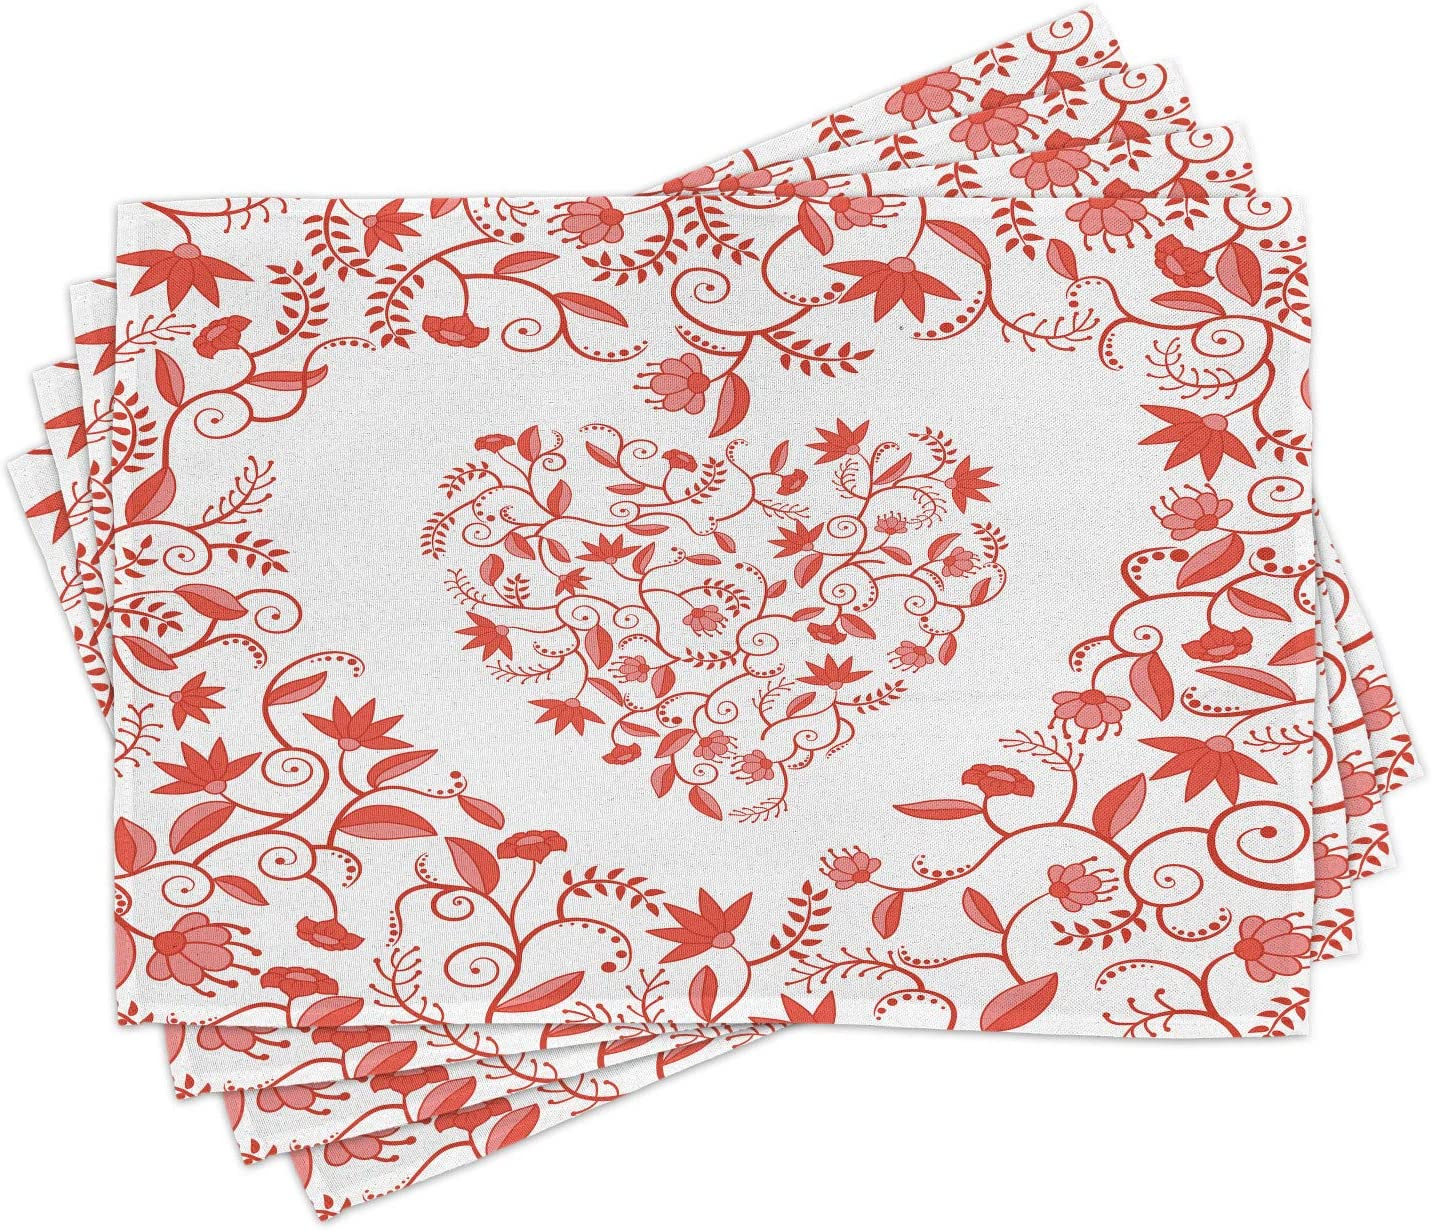 Ambesonne Valentines Day Place Mats Set of 4, Paisley Floral Details with Leaves and Roses in a Shape of Heart Frame Image, Washable Fabric Placemats for Dining Room Kitchen Table Decor, Red